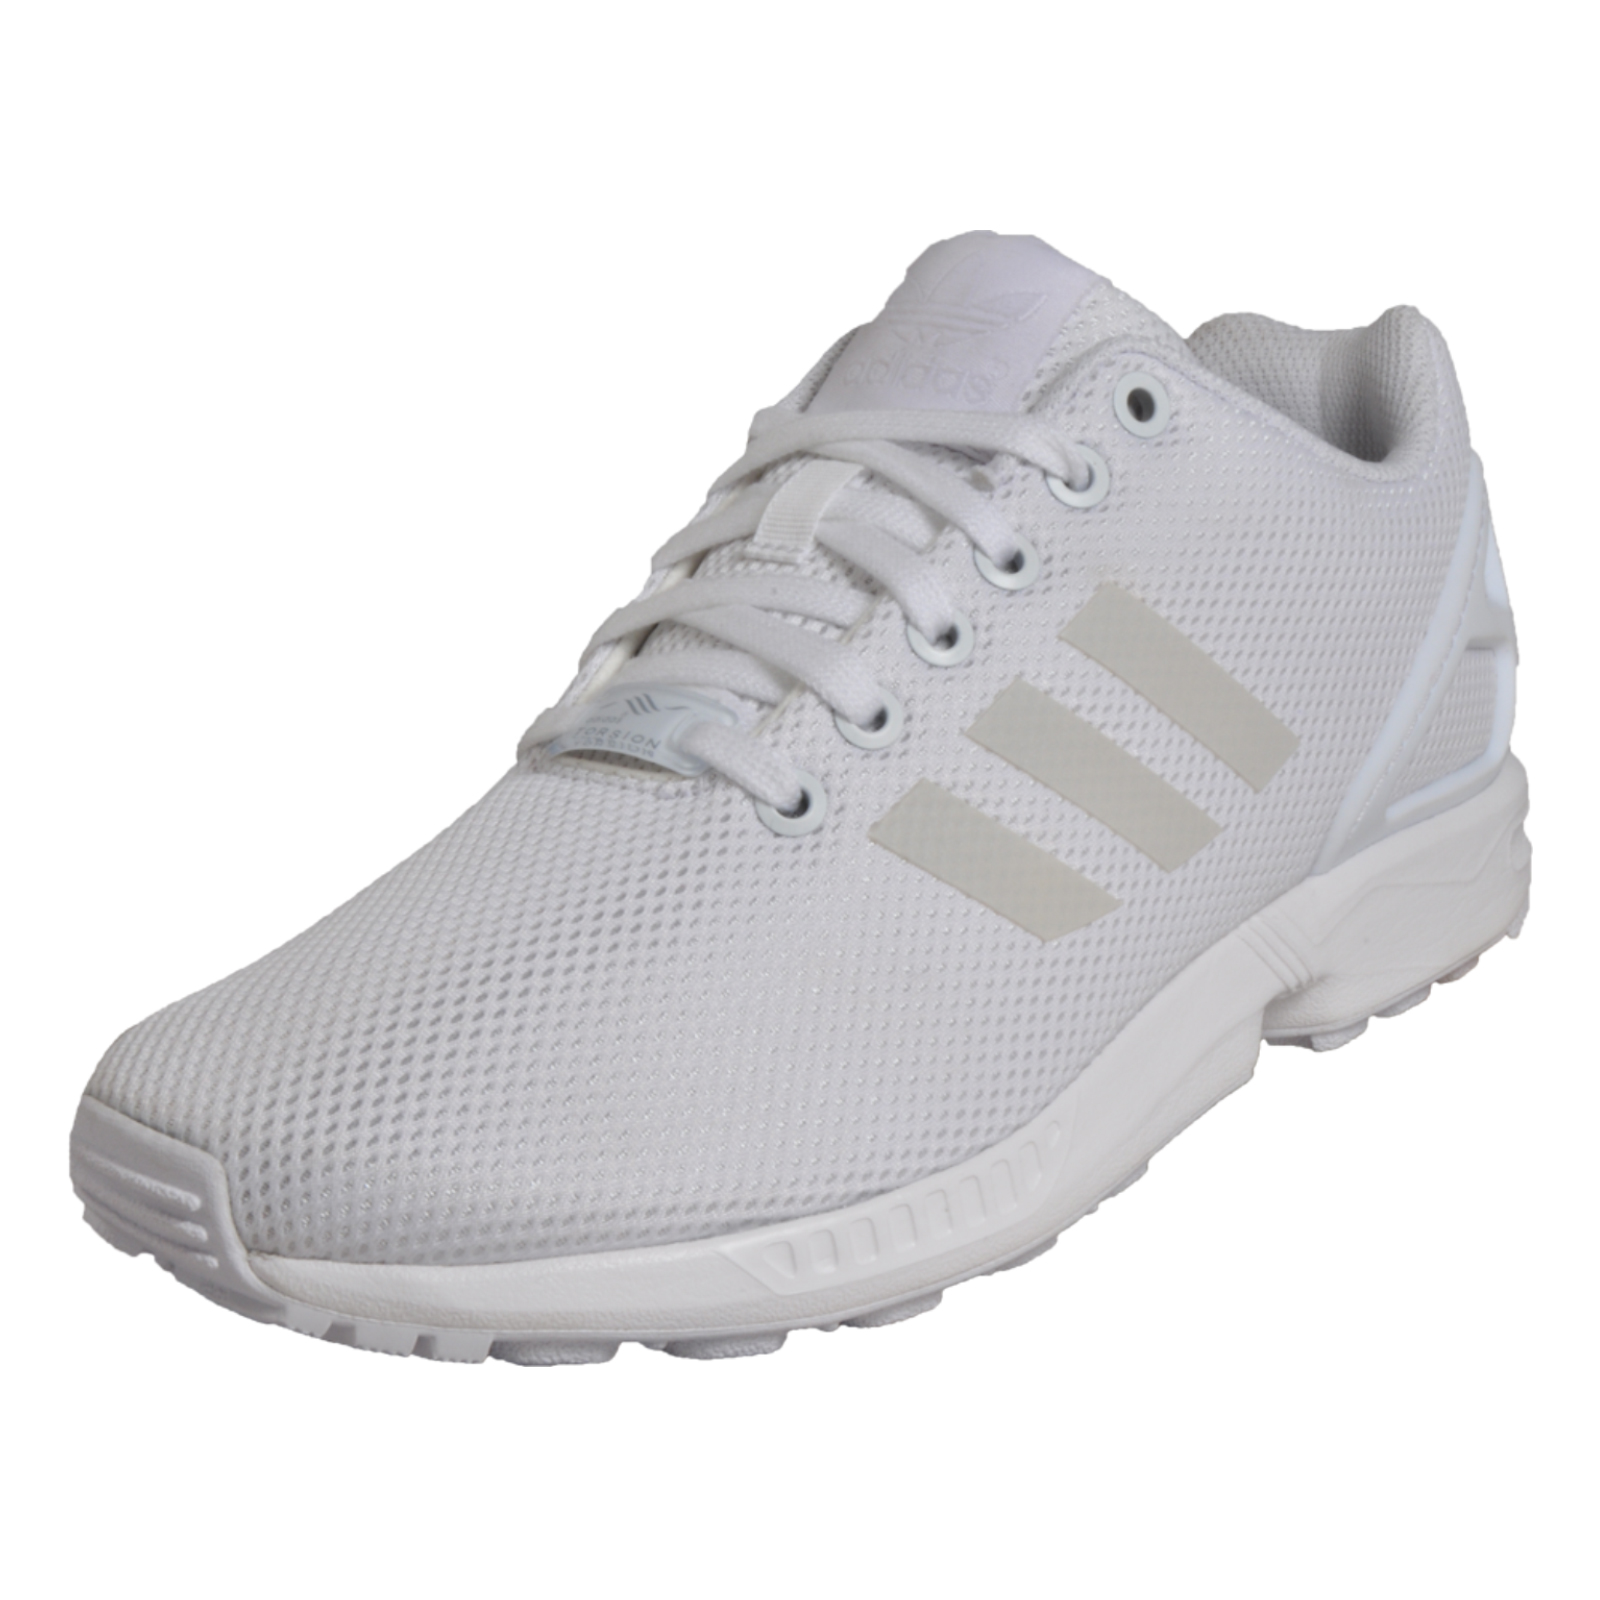 e5e3cc7aa9bc Details about Adidas Originals ZX Flux Uni Classic Casual Retro Trainers  White UK 4 Only